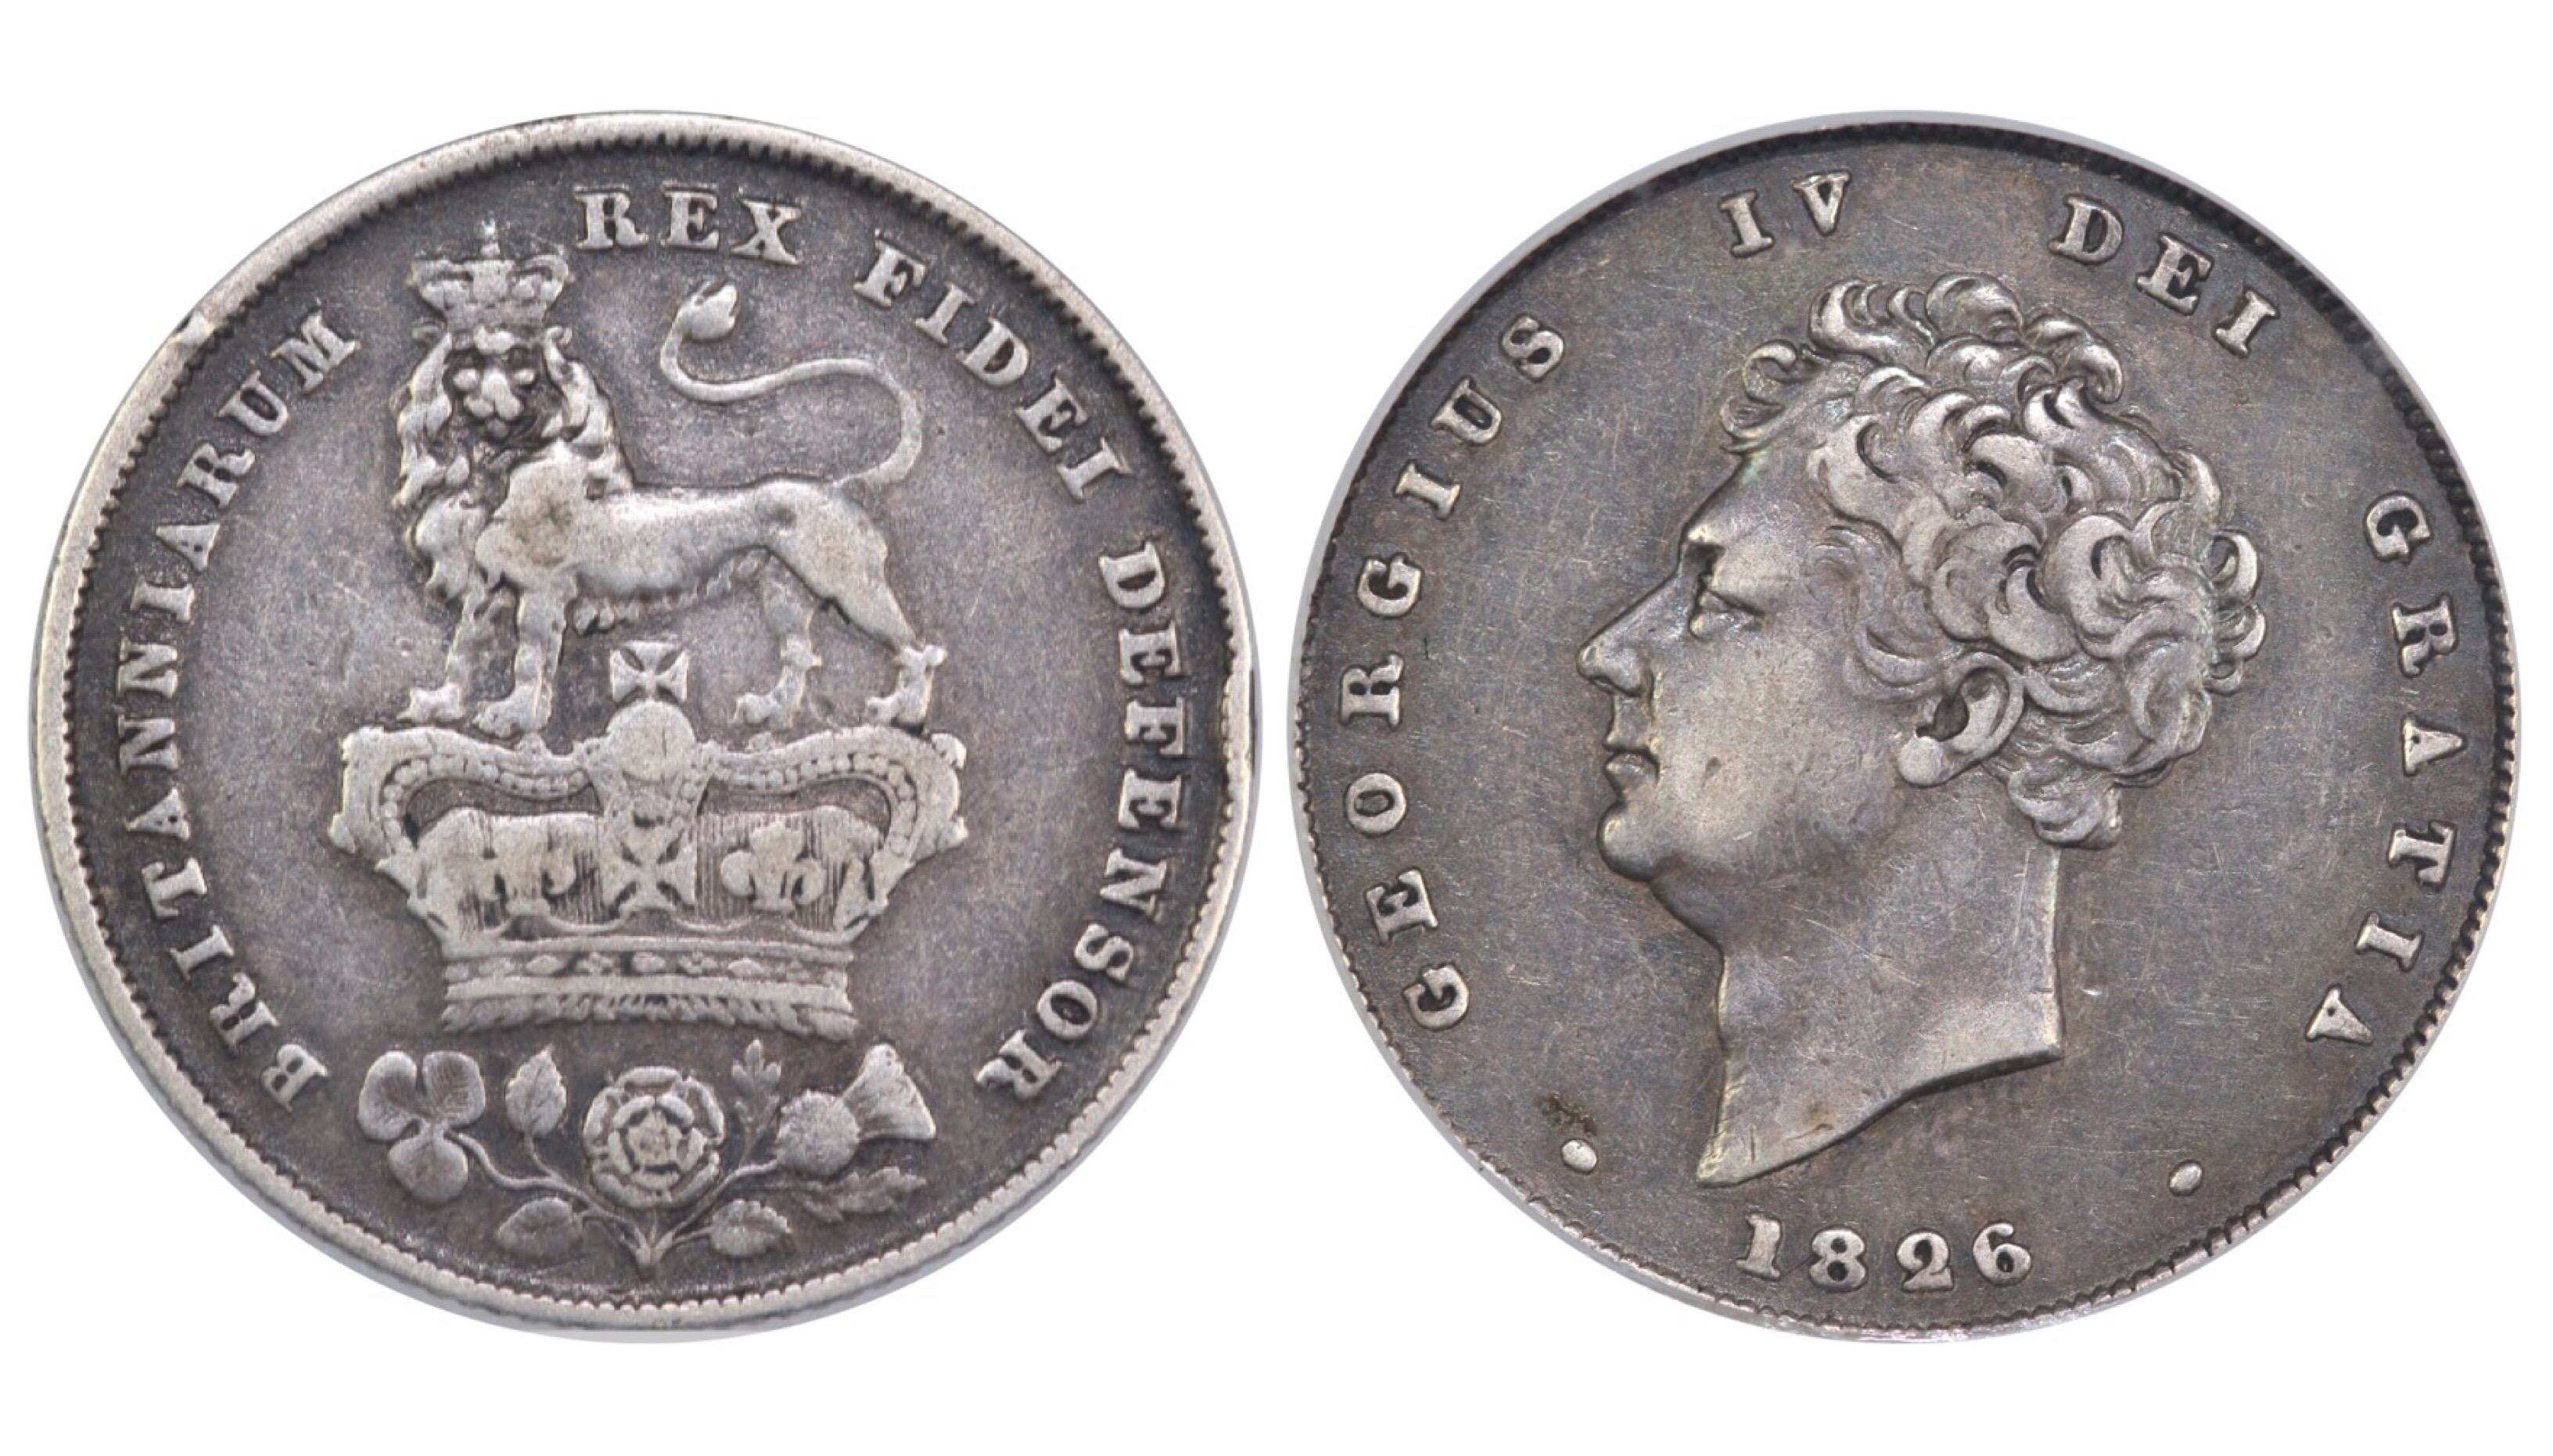 1826 Shilling, CGS 25, George IV, ESC 1257, UIN 26708